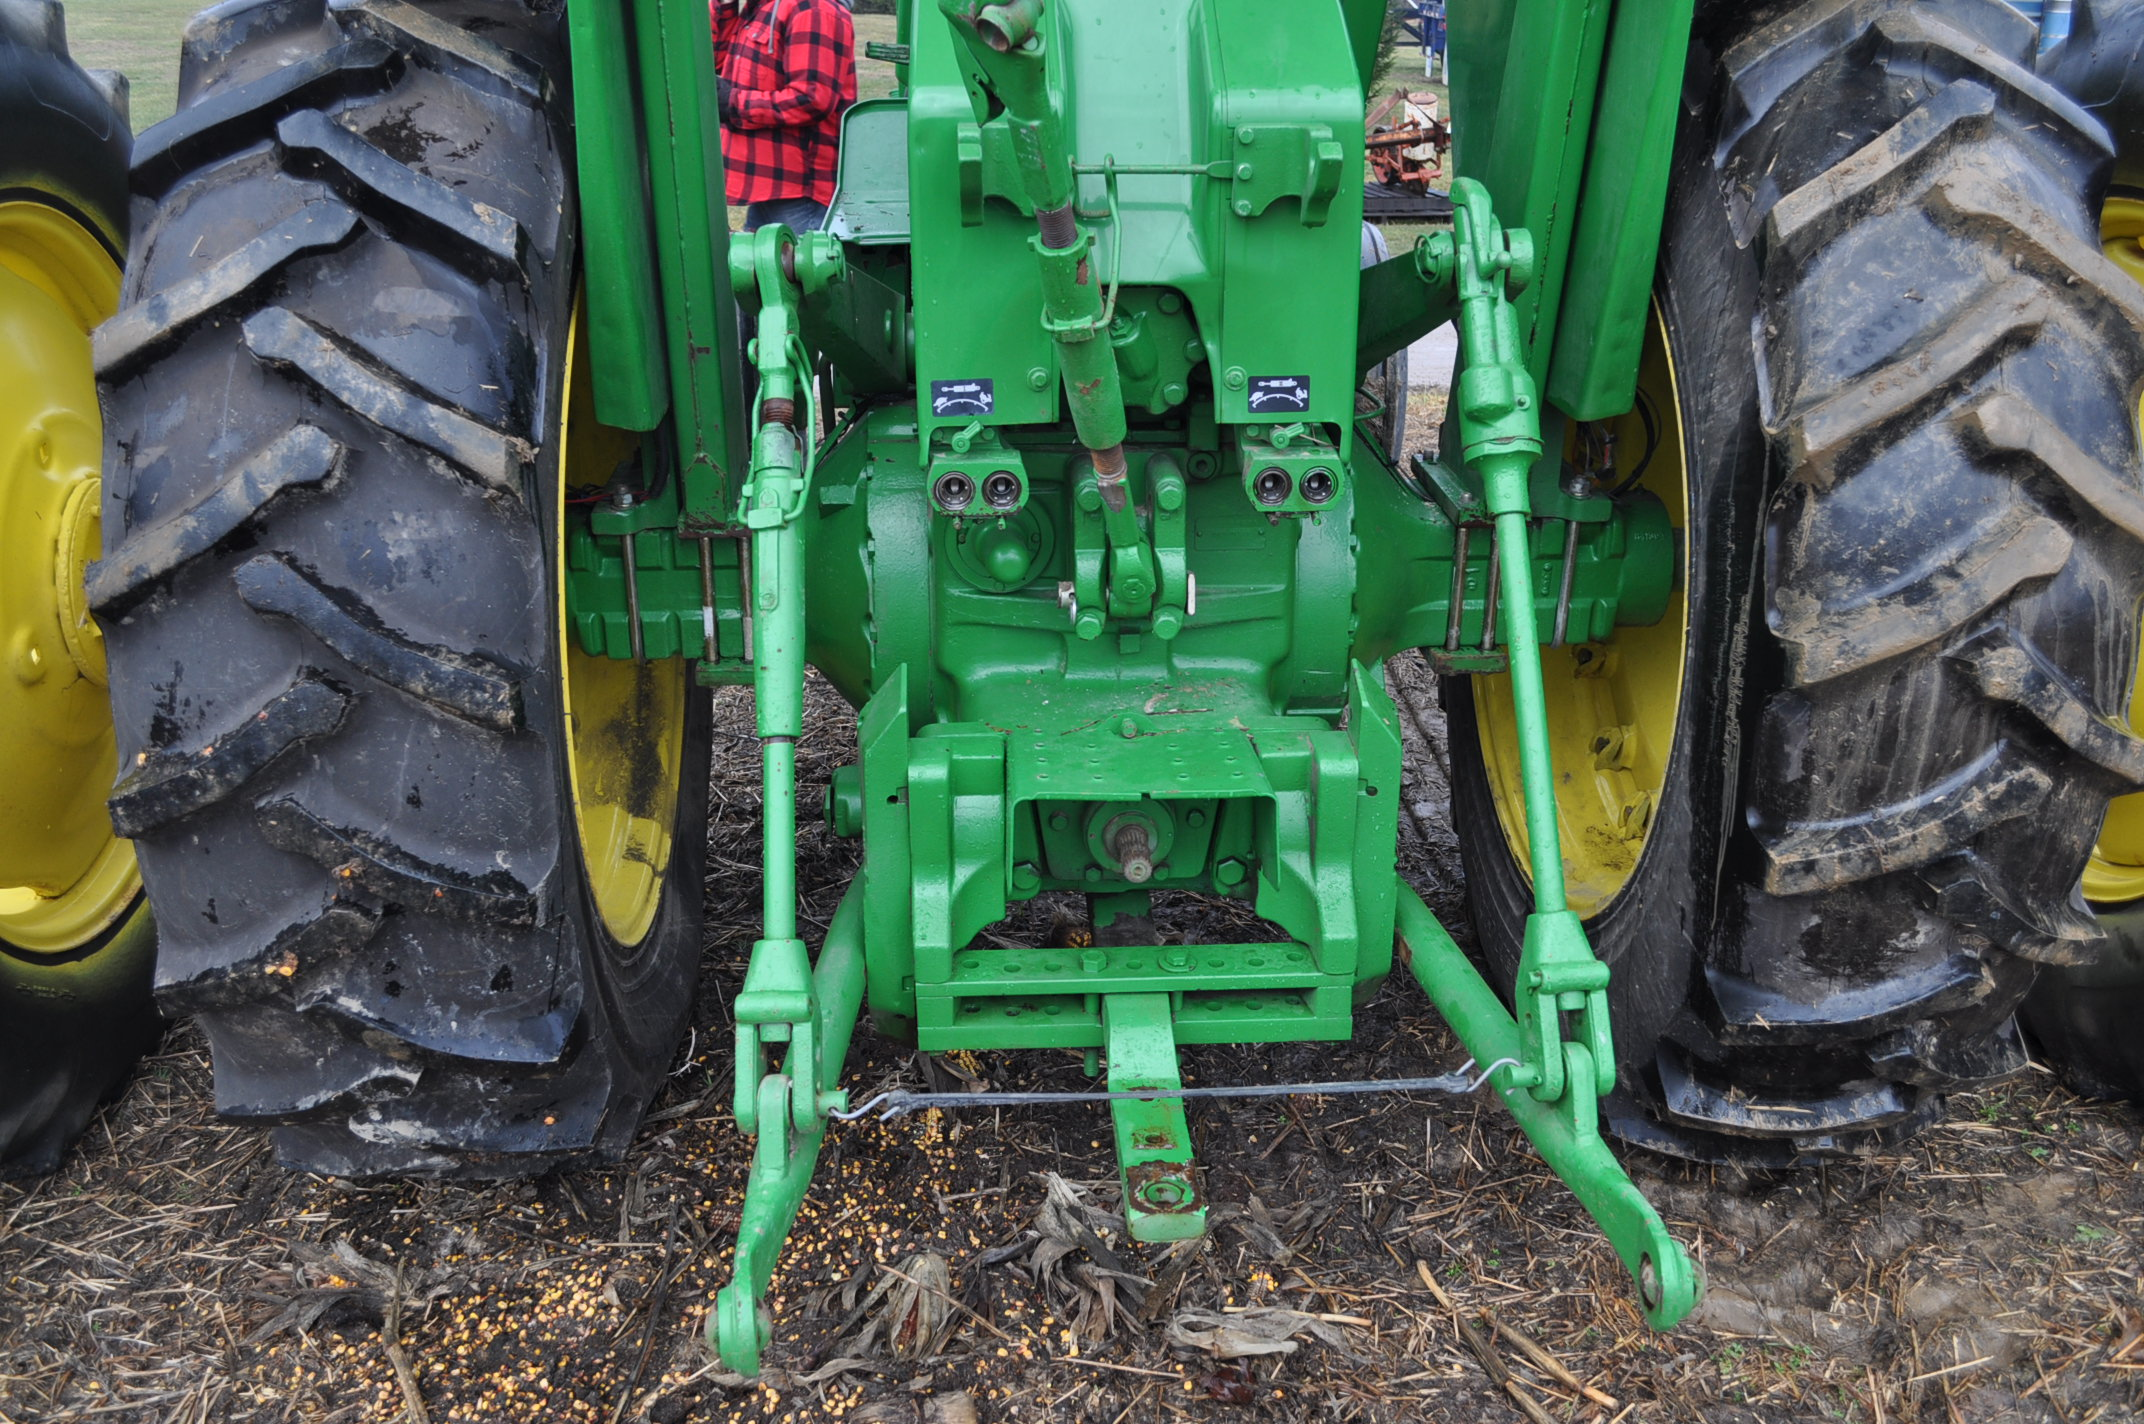 John Deere 4520 tractor, ***4520 frame with 4620 engine**** diesel, 18.4-38 new inside rear - Image 11 of 17